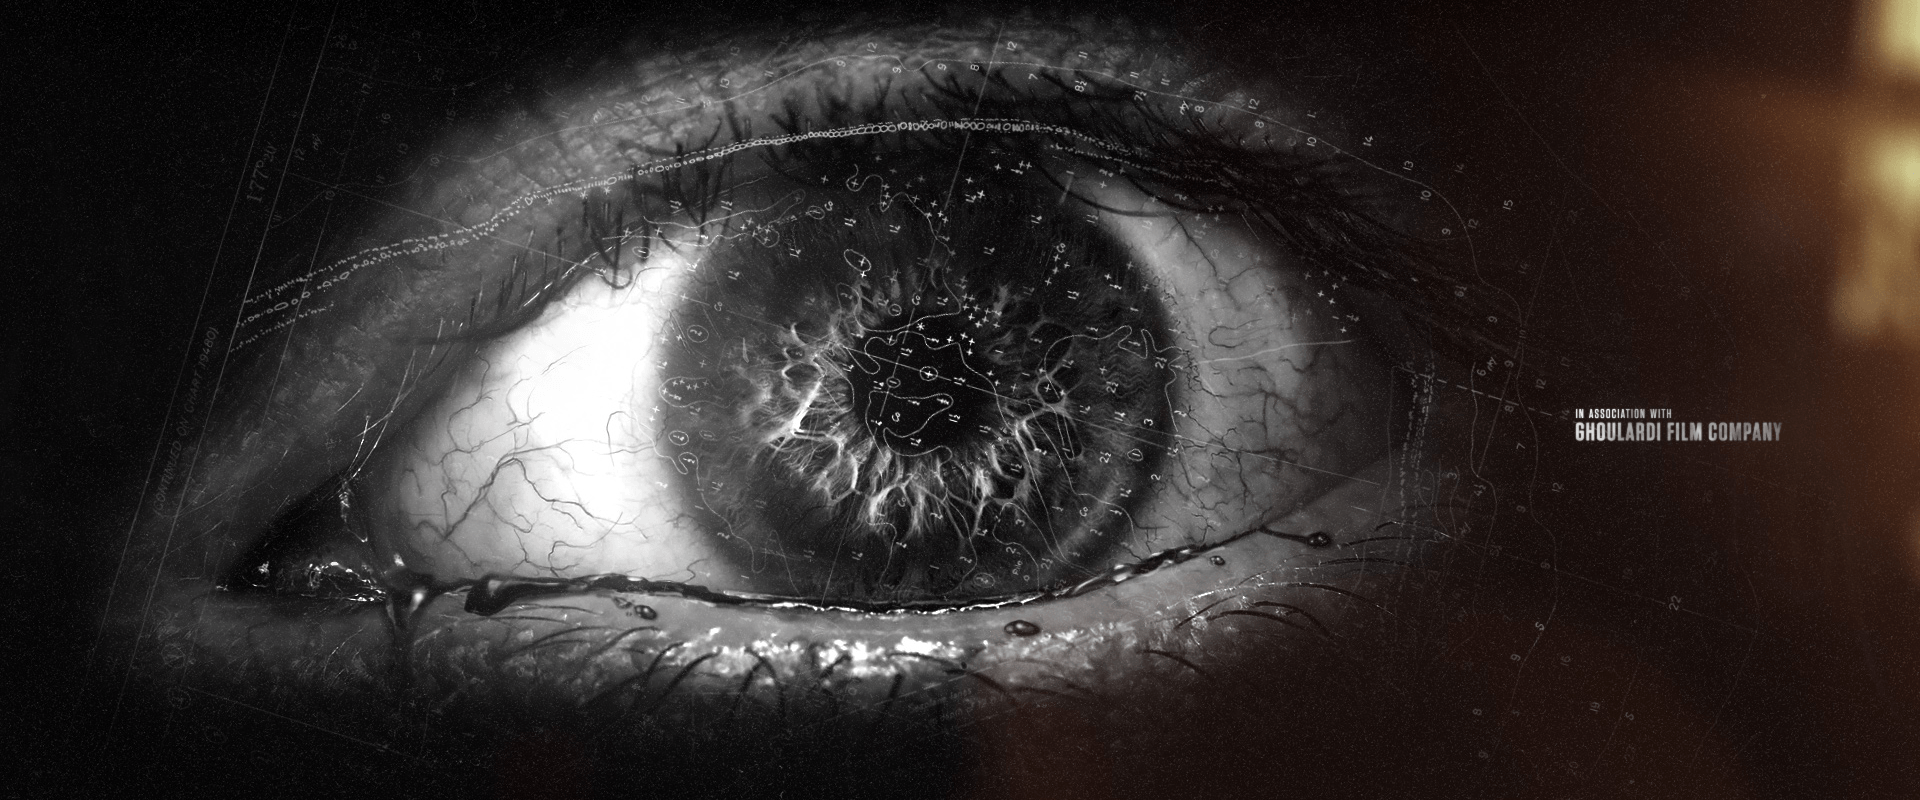 THERE WILL BE BLOOD — Main Title Sequence